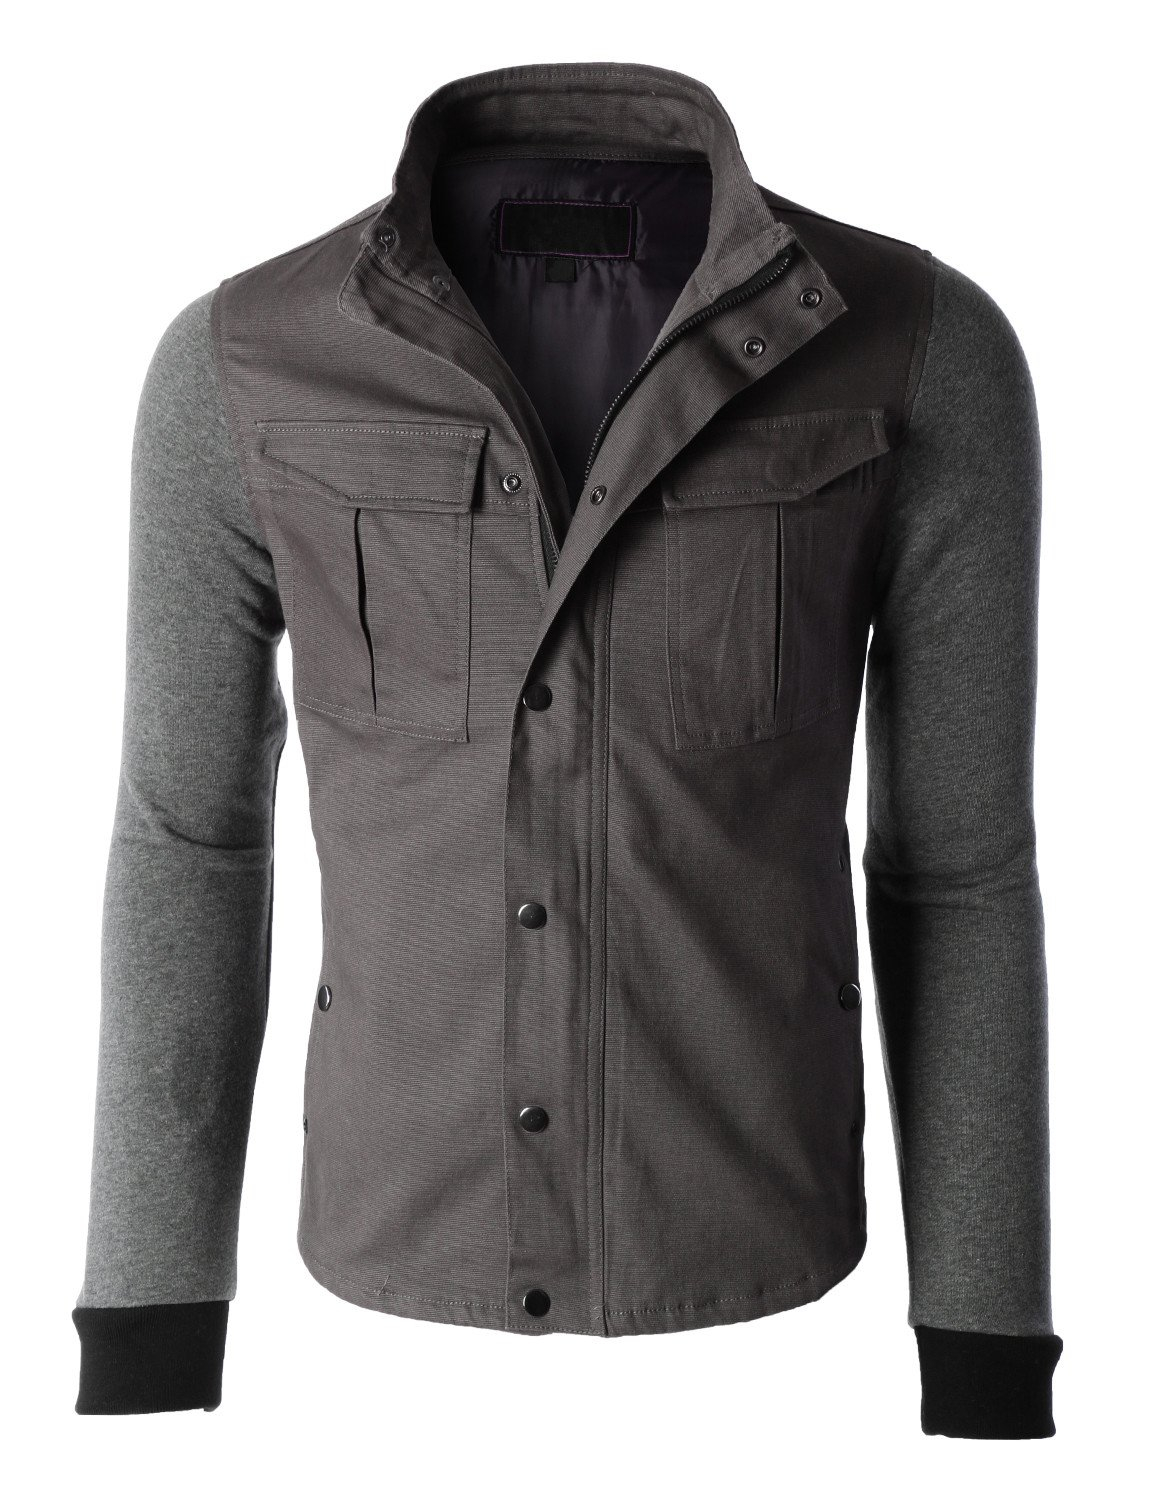 Image of Mens Stand Collar Zip Up Military Jacket (CLEARANCE)